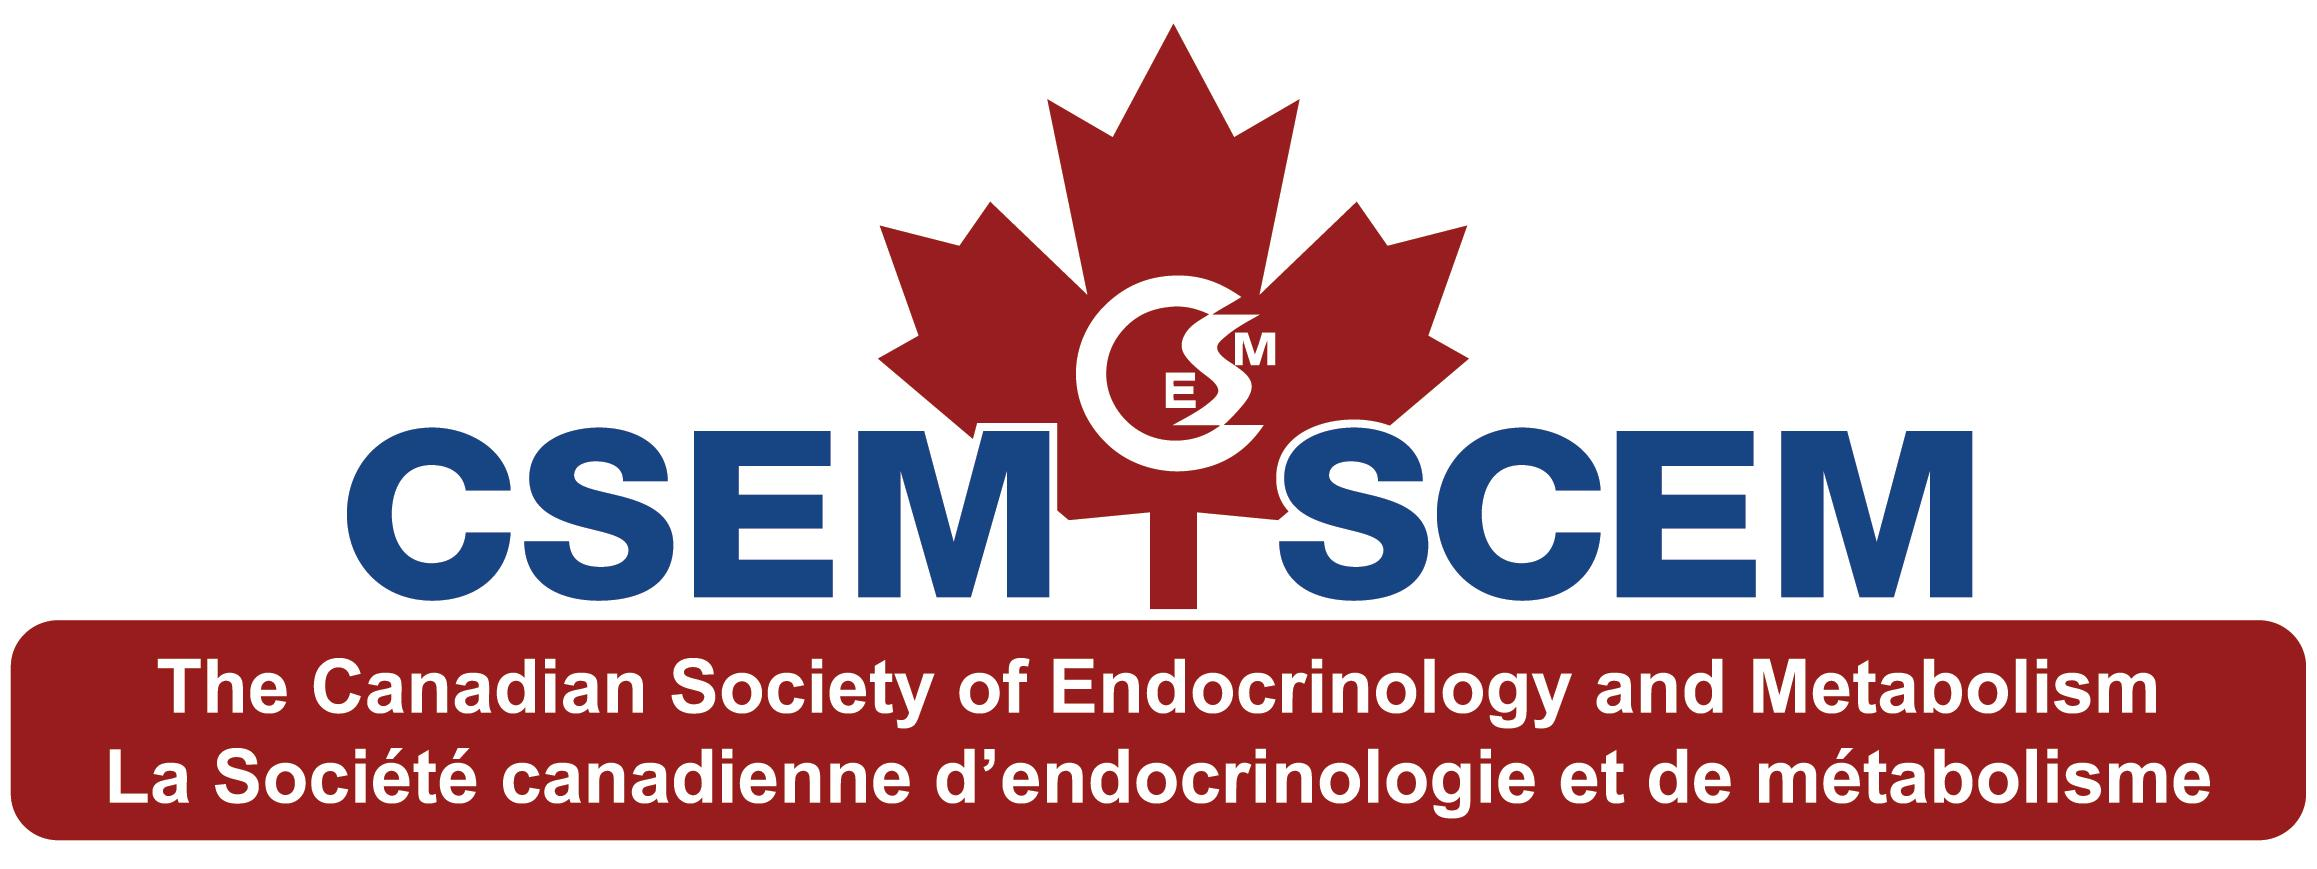 HOME - CSEM The Canadian Society of Endocrinology and Metabolism